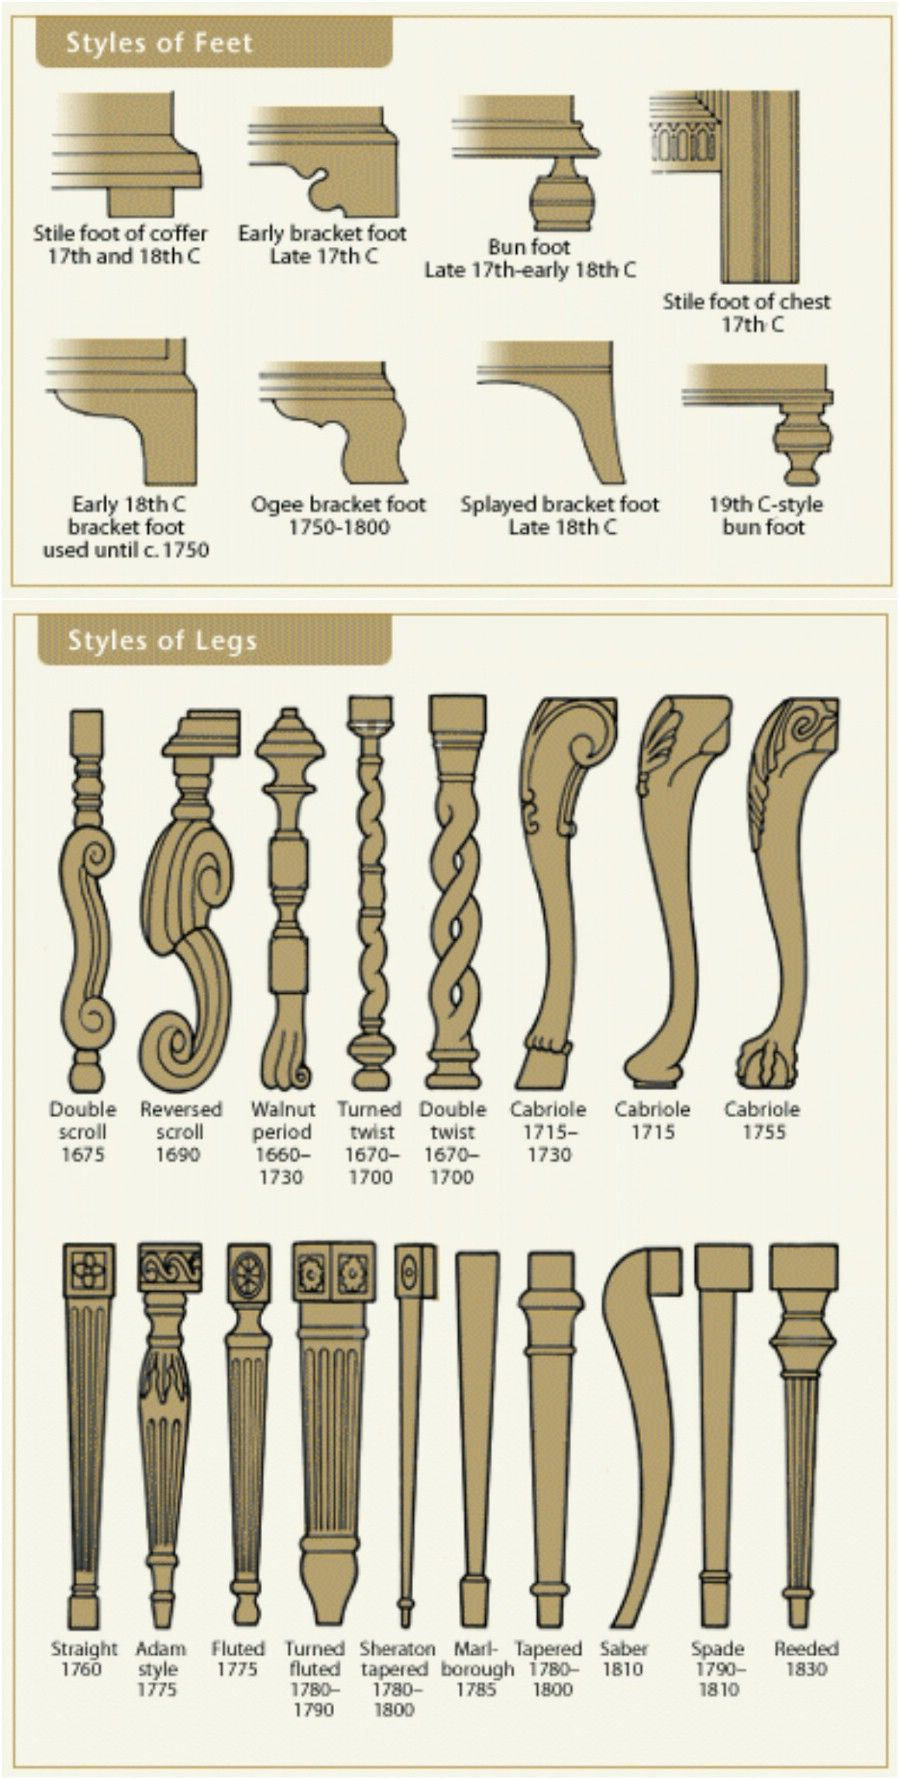 Antique chairs styles pictures - And Learn The Styles Of Chair Legs As Well 50 Amazingly Clever